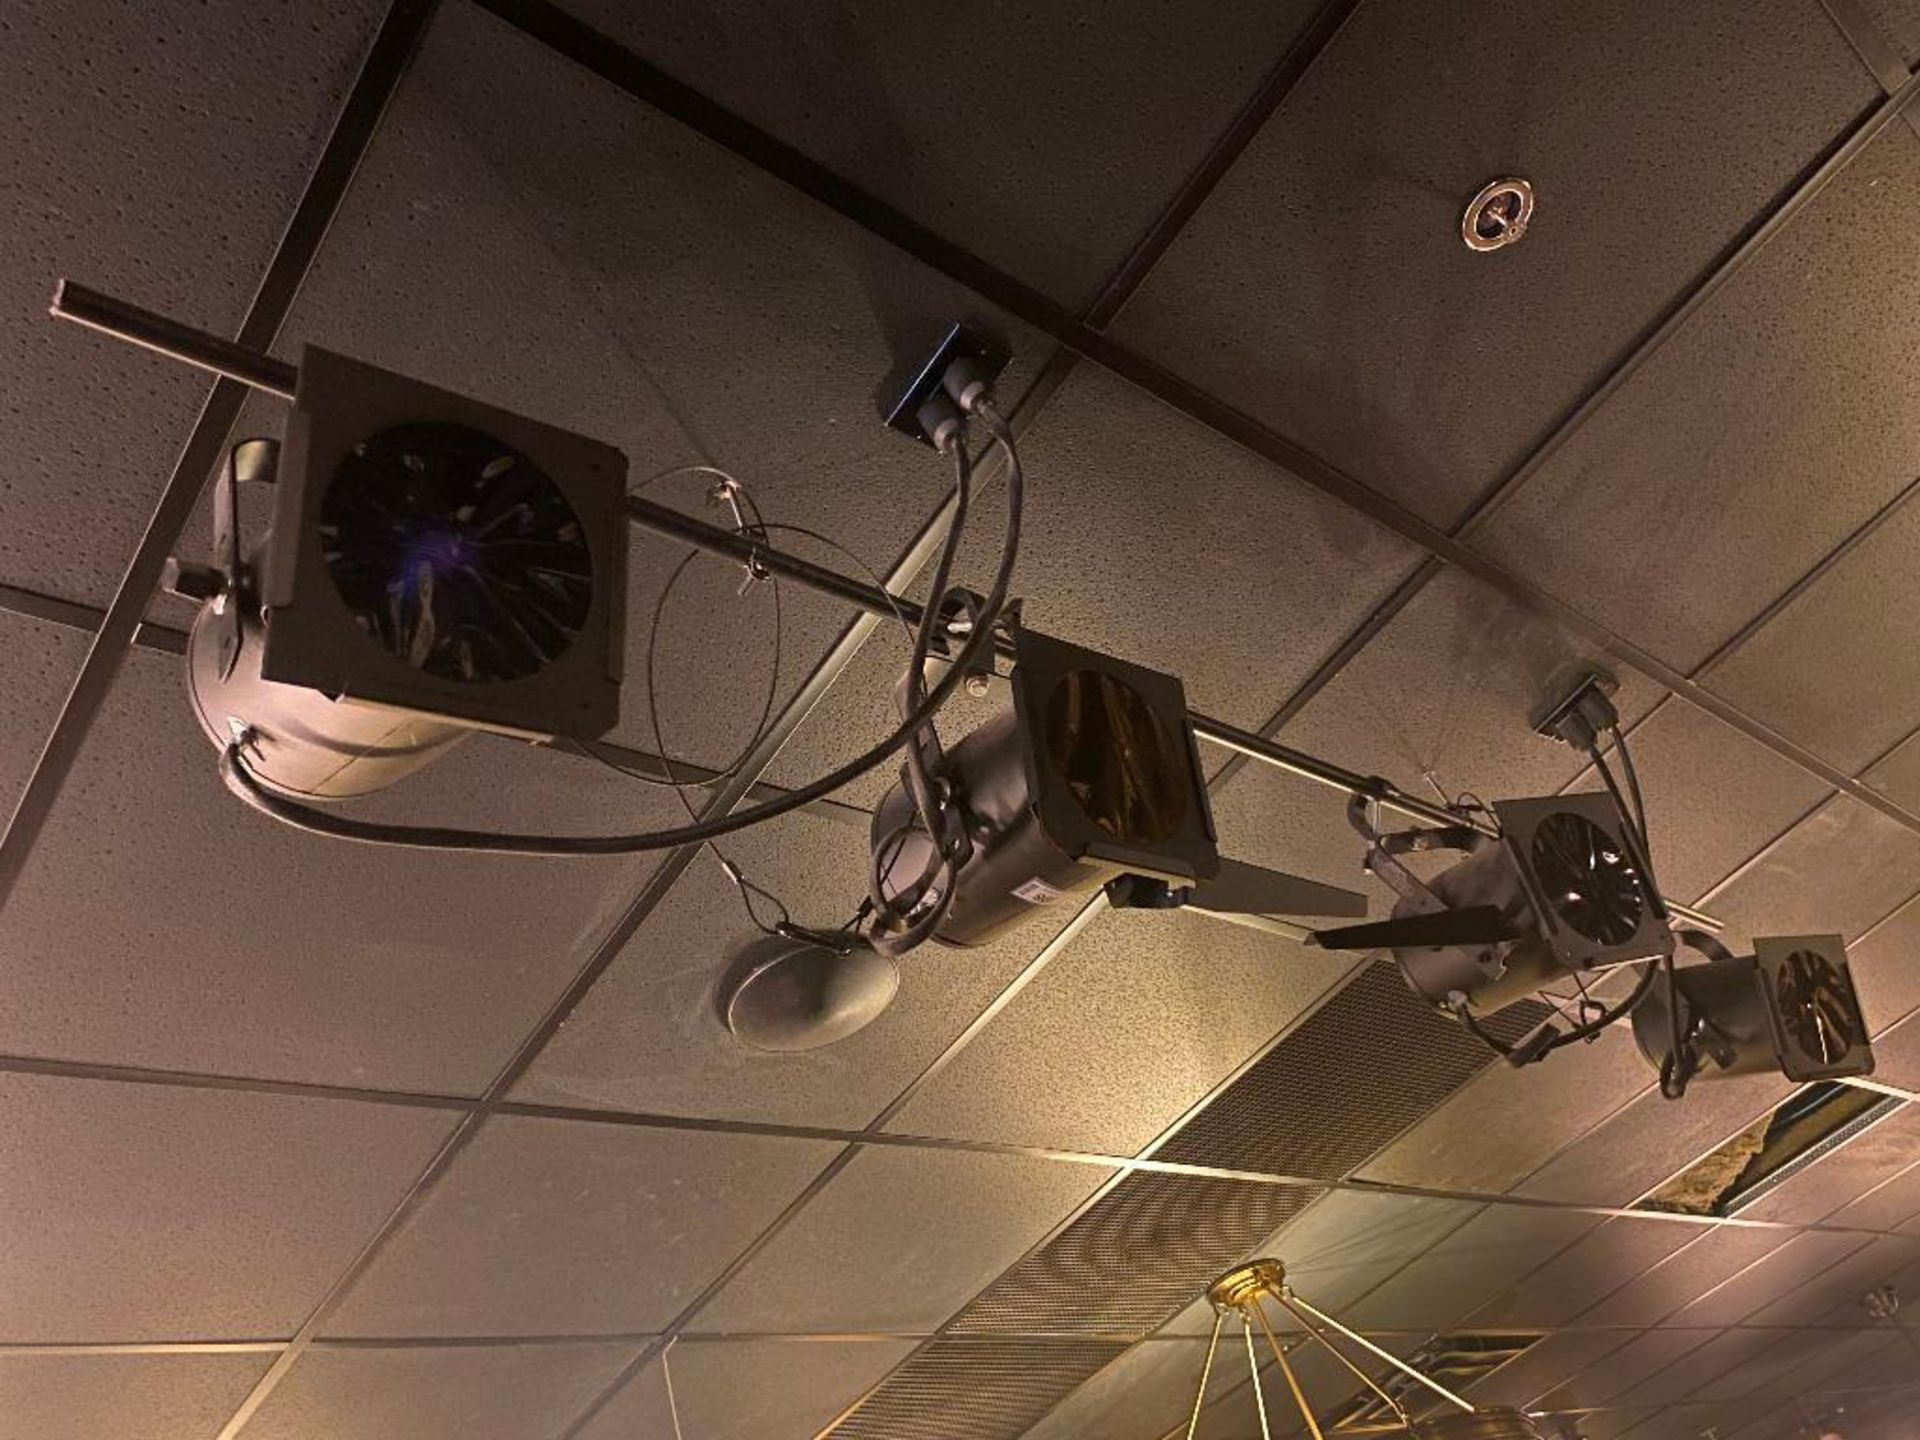 LOT OF (4) STAGE LIGHTS - NOTE: REQUIRES REMOVAL FROM CEILING - Image 2 of 3